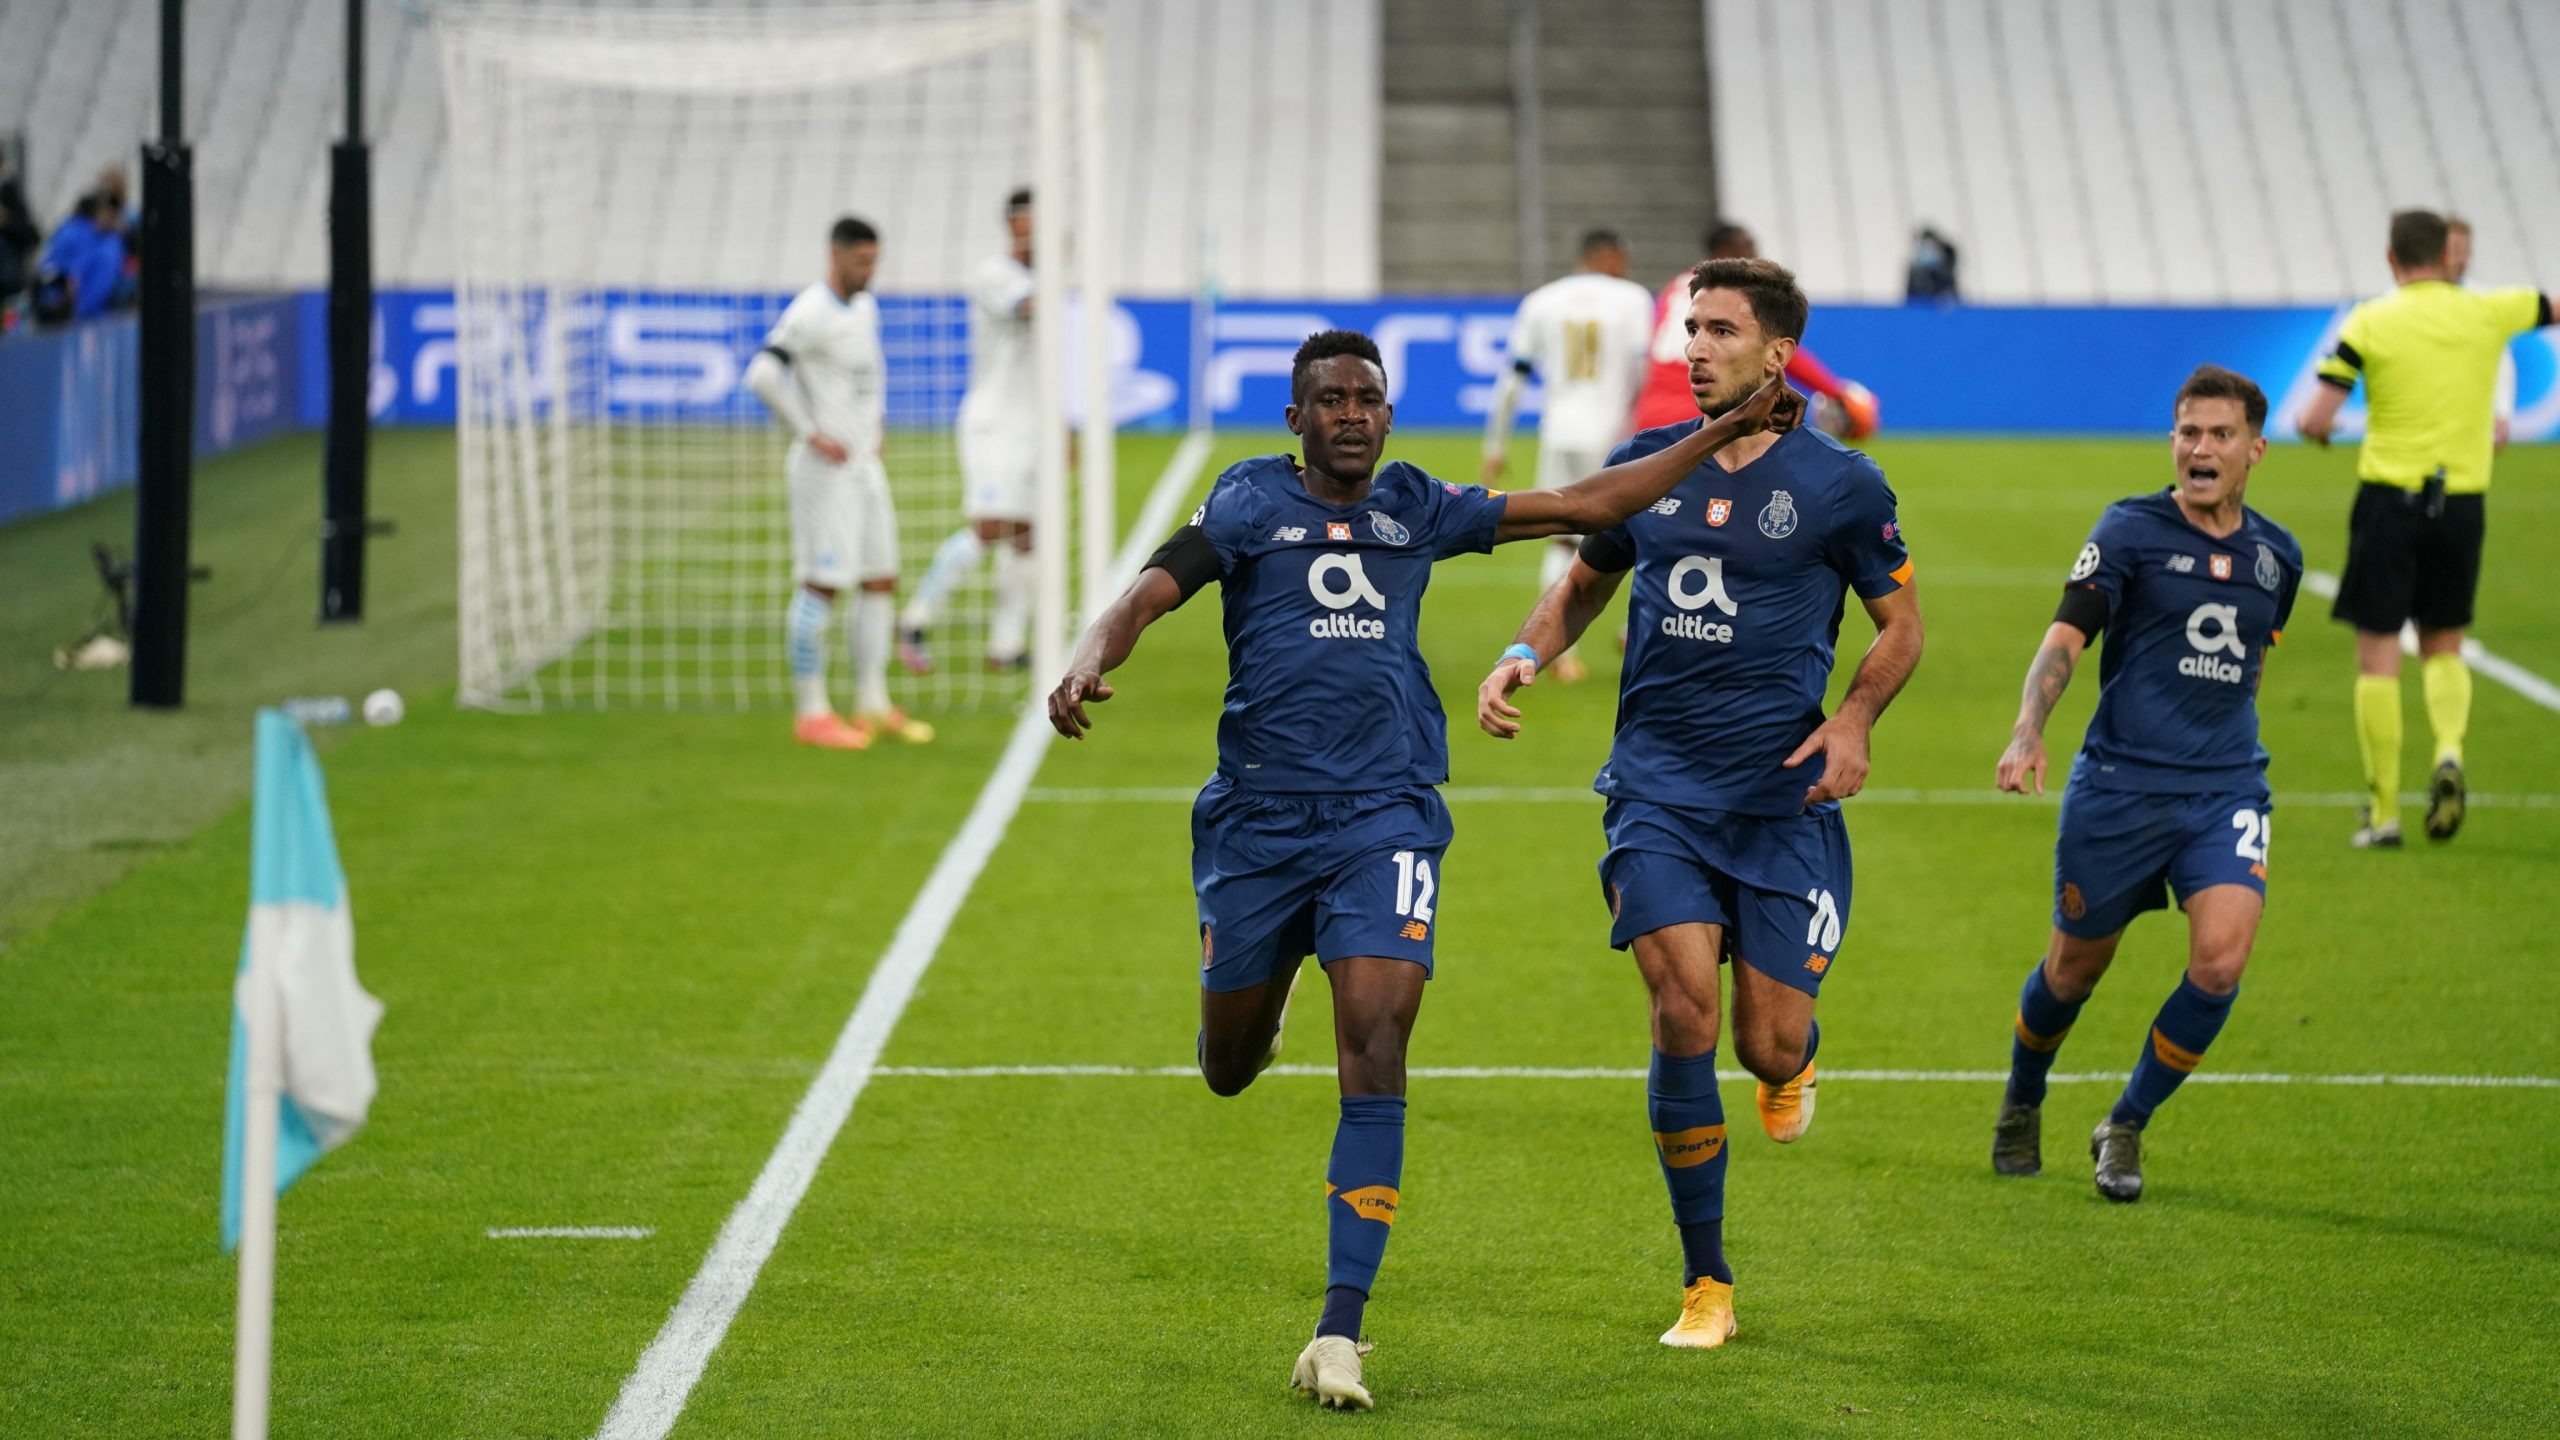 Sanusi Named In Champions League Team Of The Week